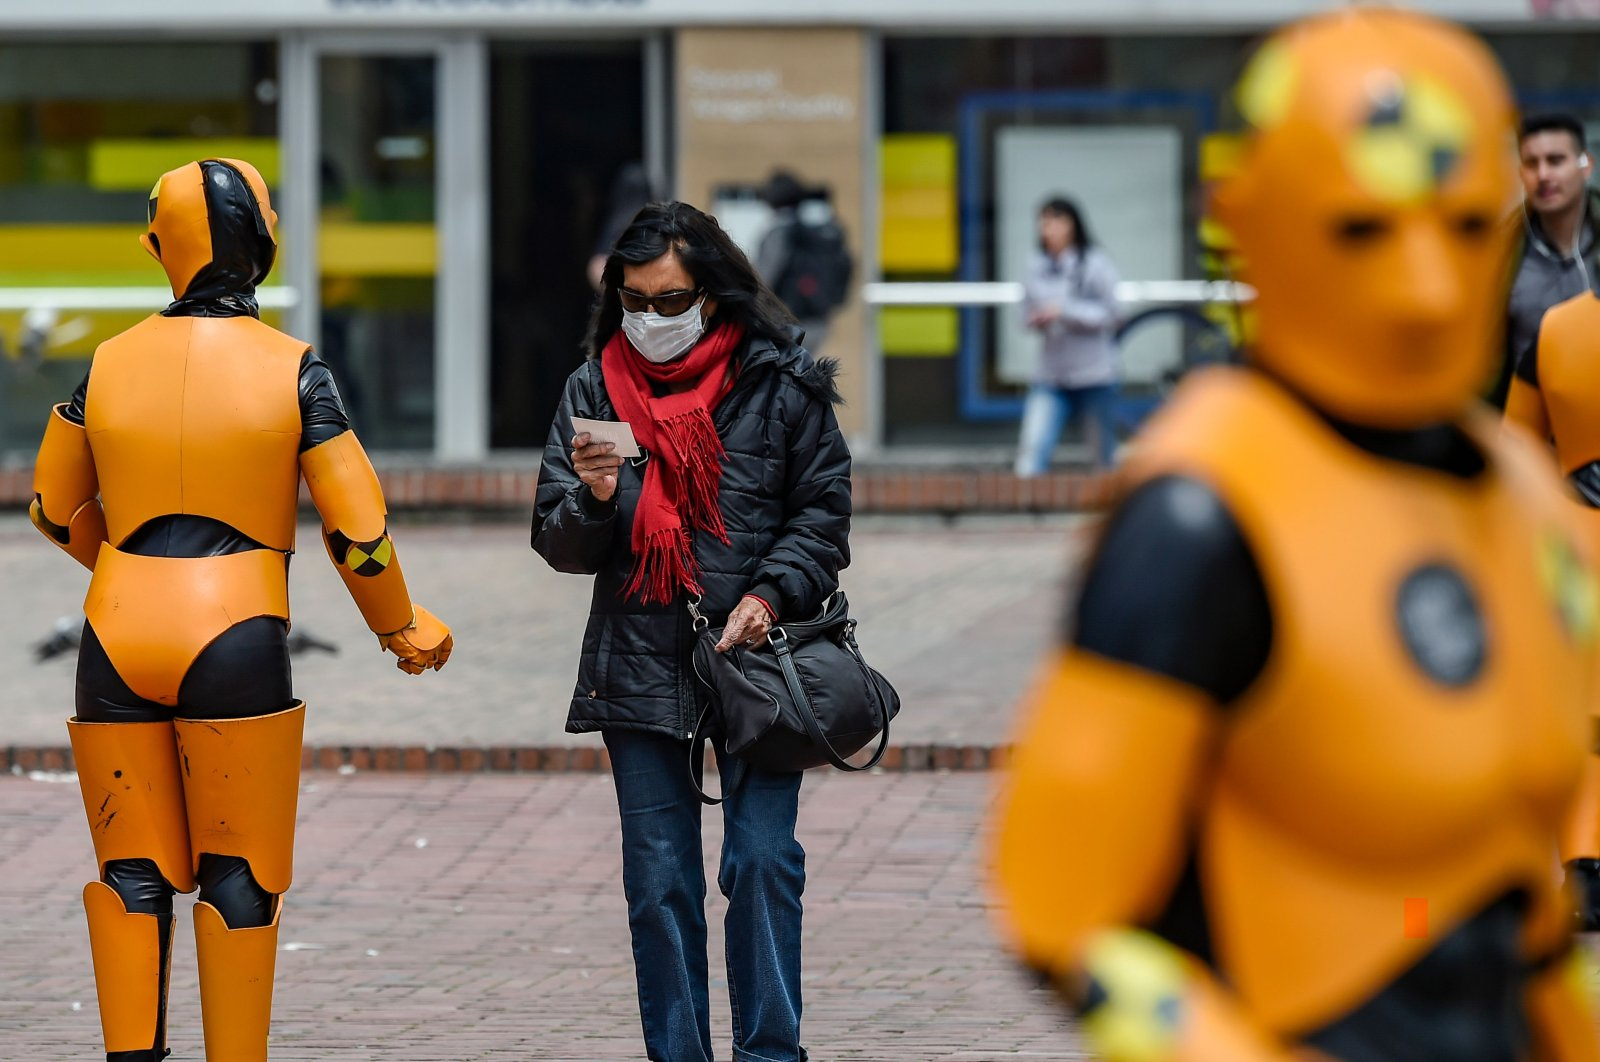 A woman wearing a protective face mask as a precaution against the spread of the new coronavirus, the COVID-19, walks by traffic personnel in road safety robot suits, in Bogota on March 6, 2020. (AFP Photo)